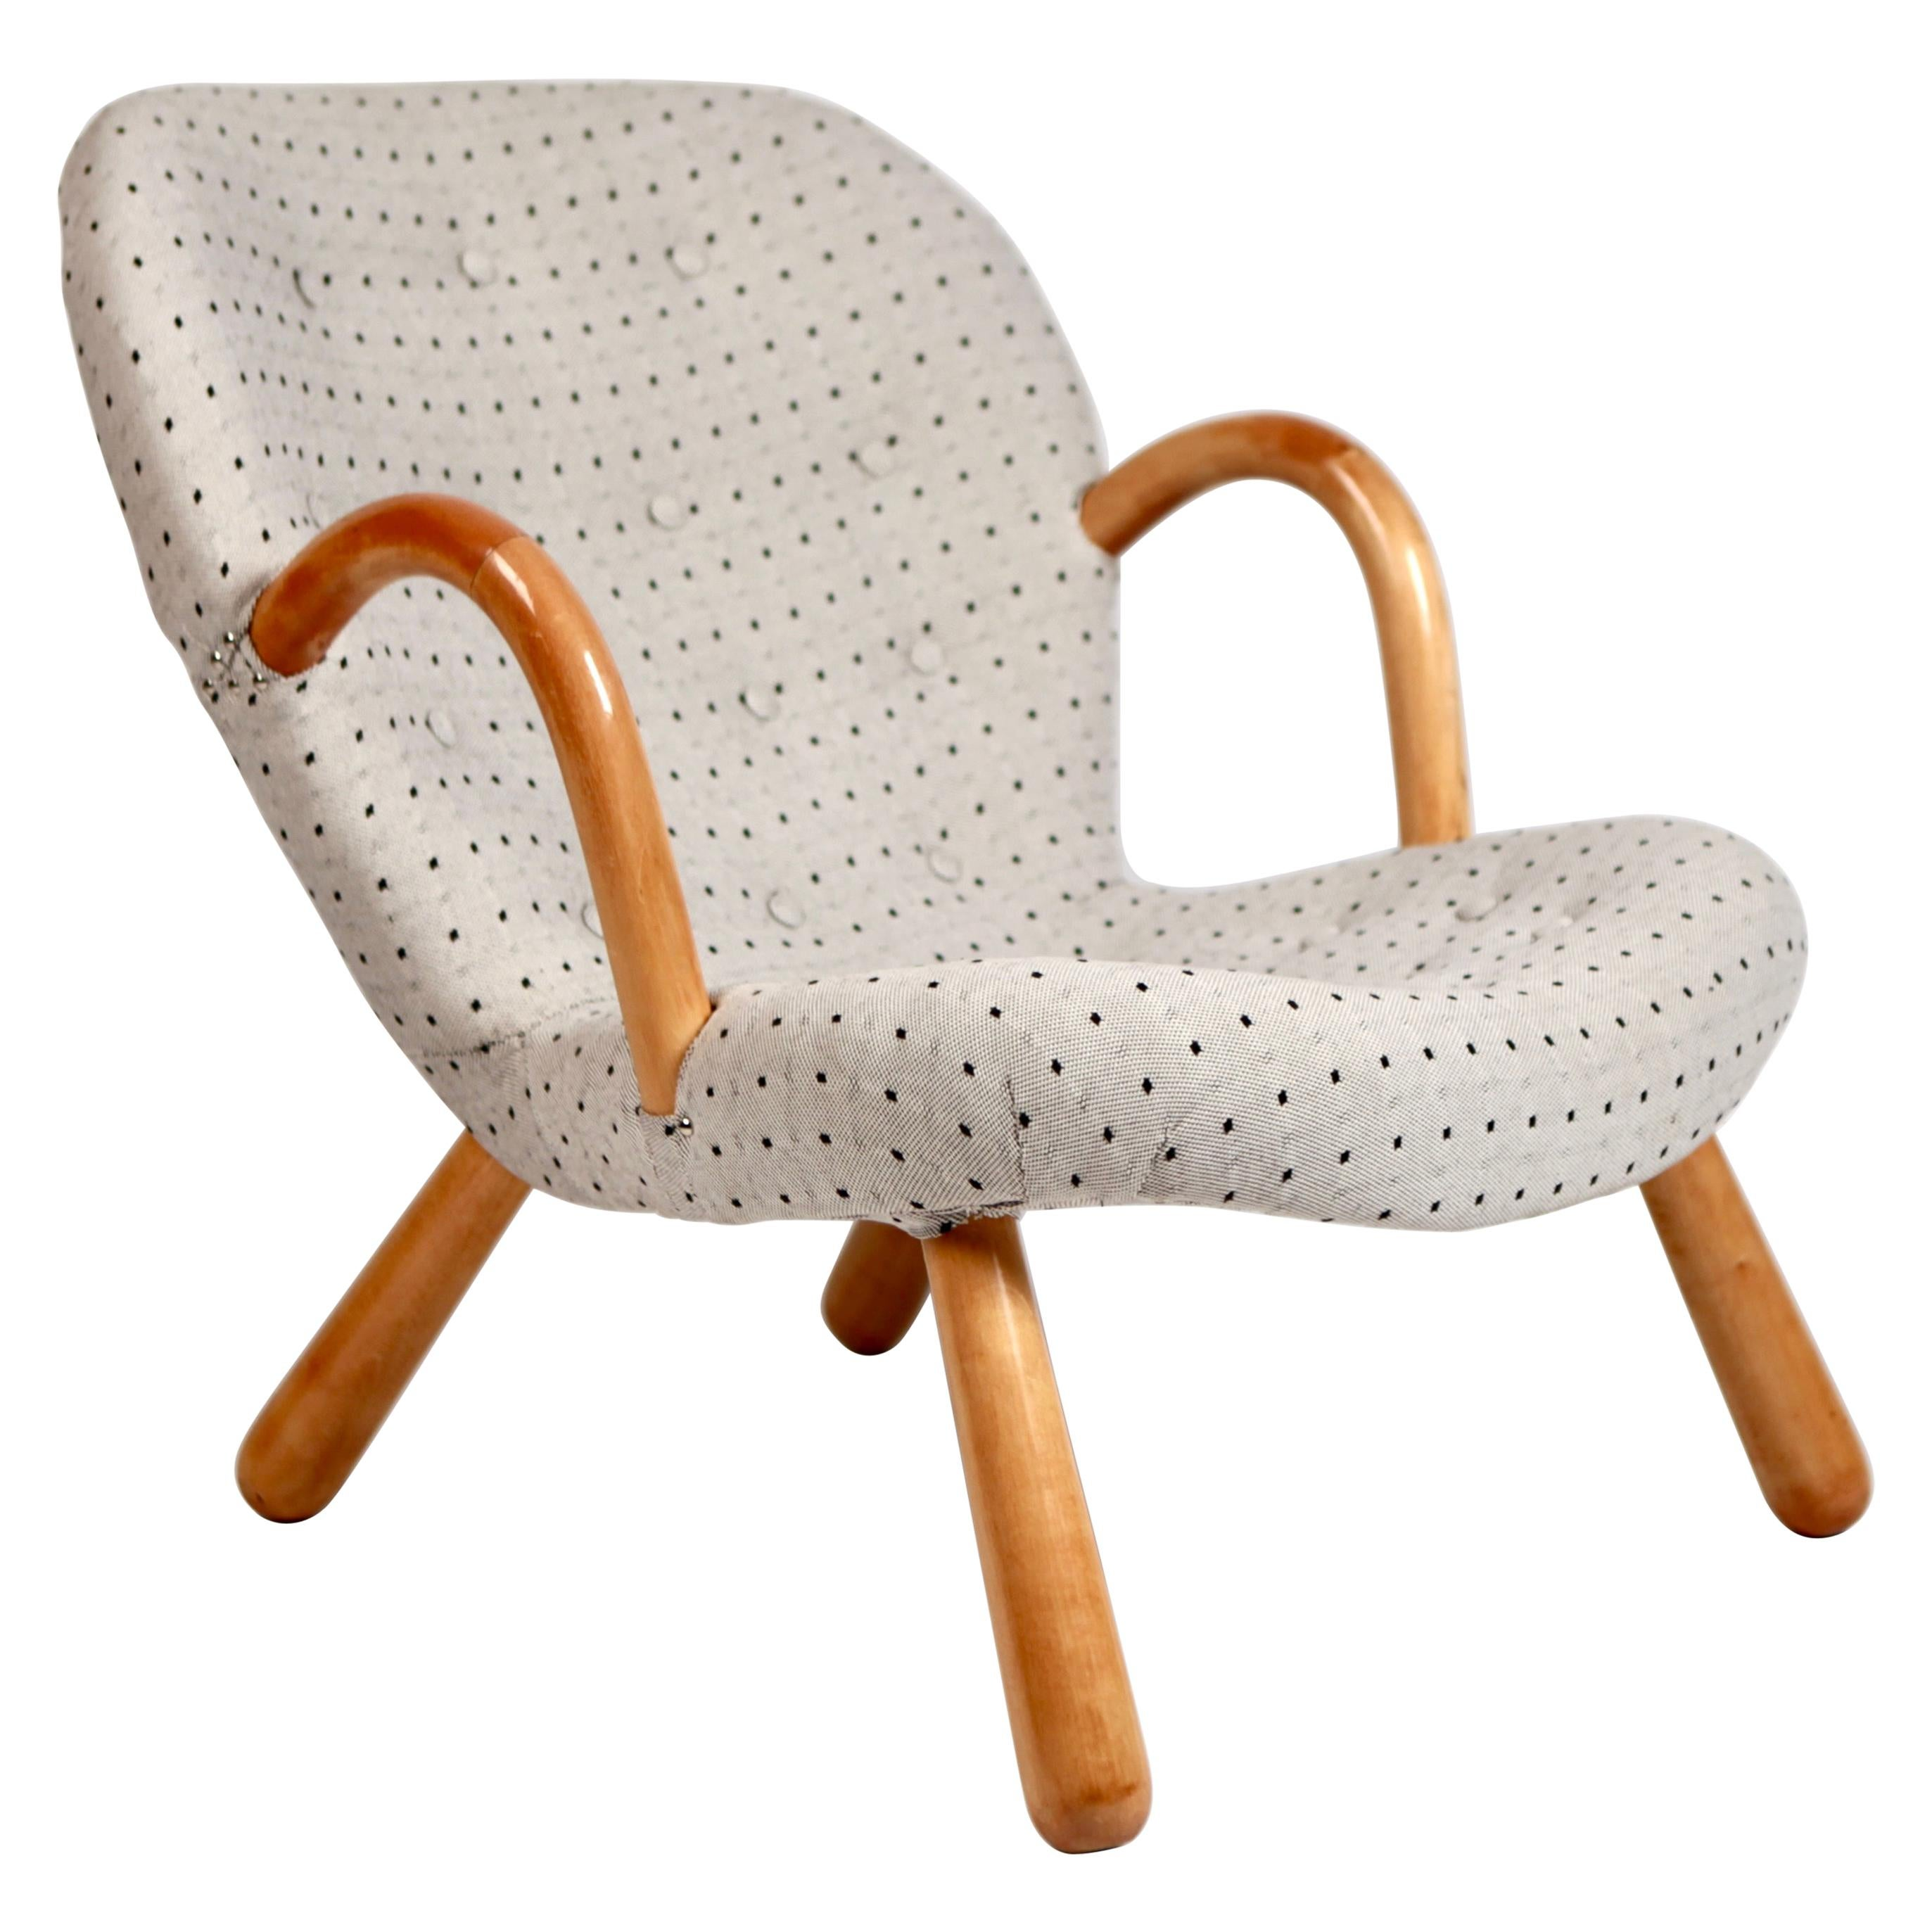 Philip Arctander Clam Chair by Nordisk Stål  Denmark, 1940s